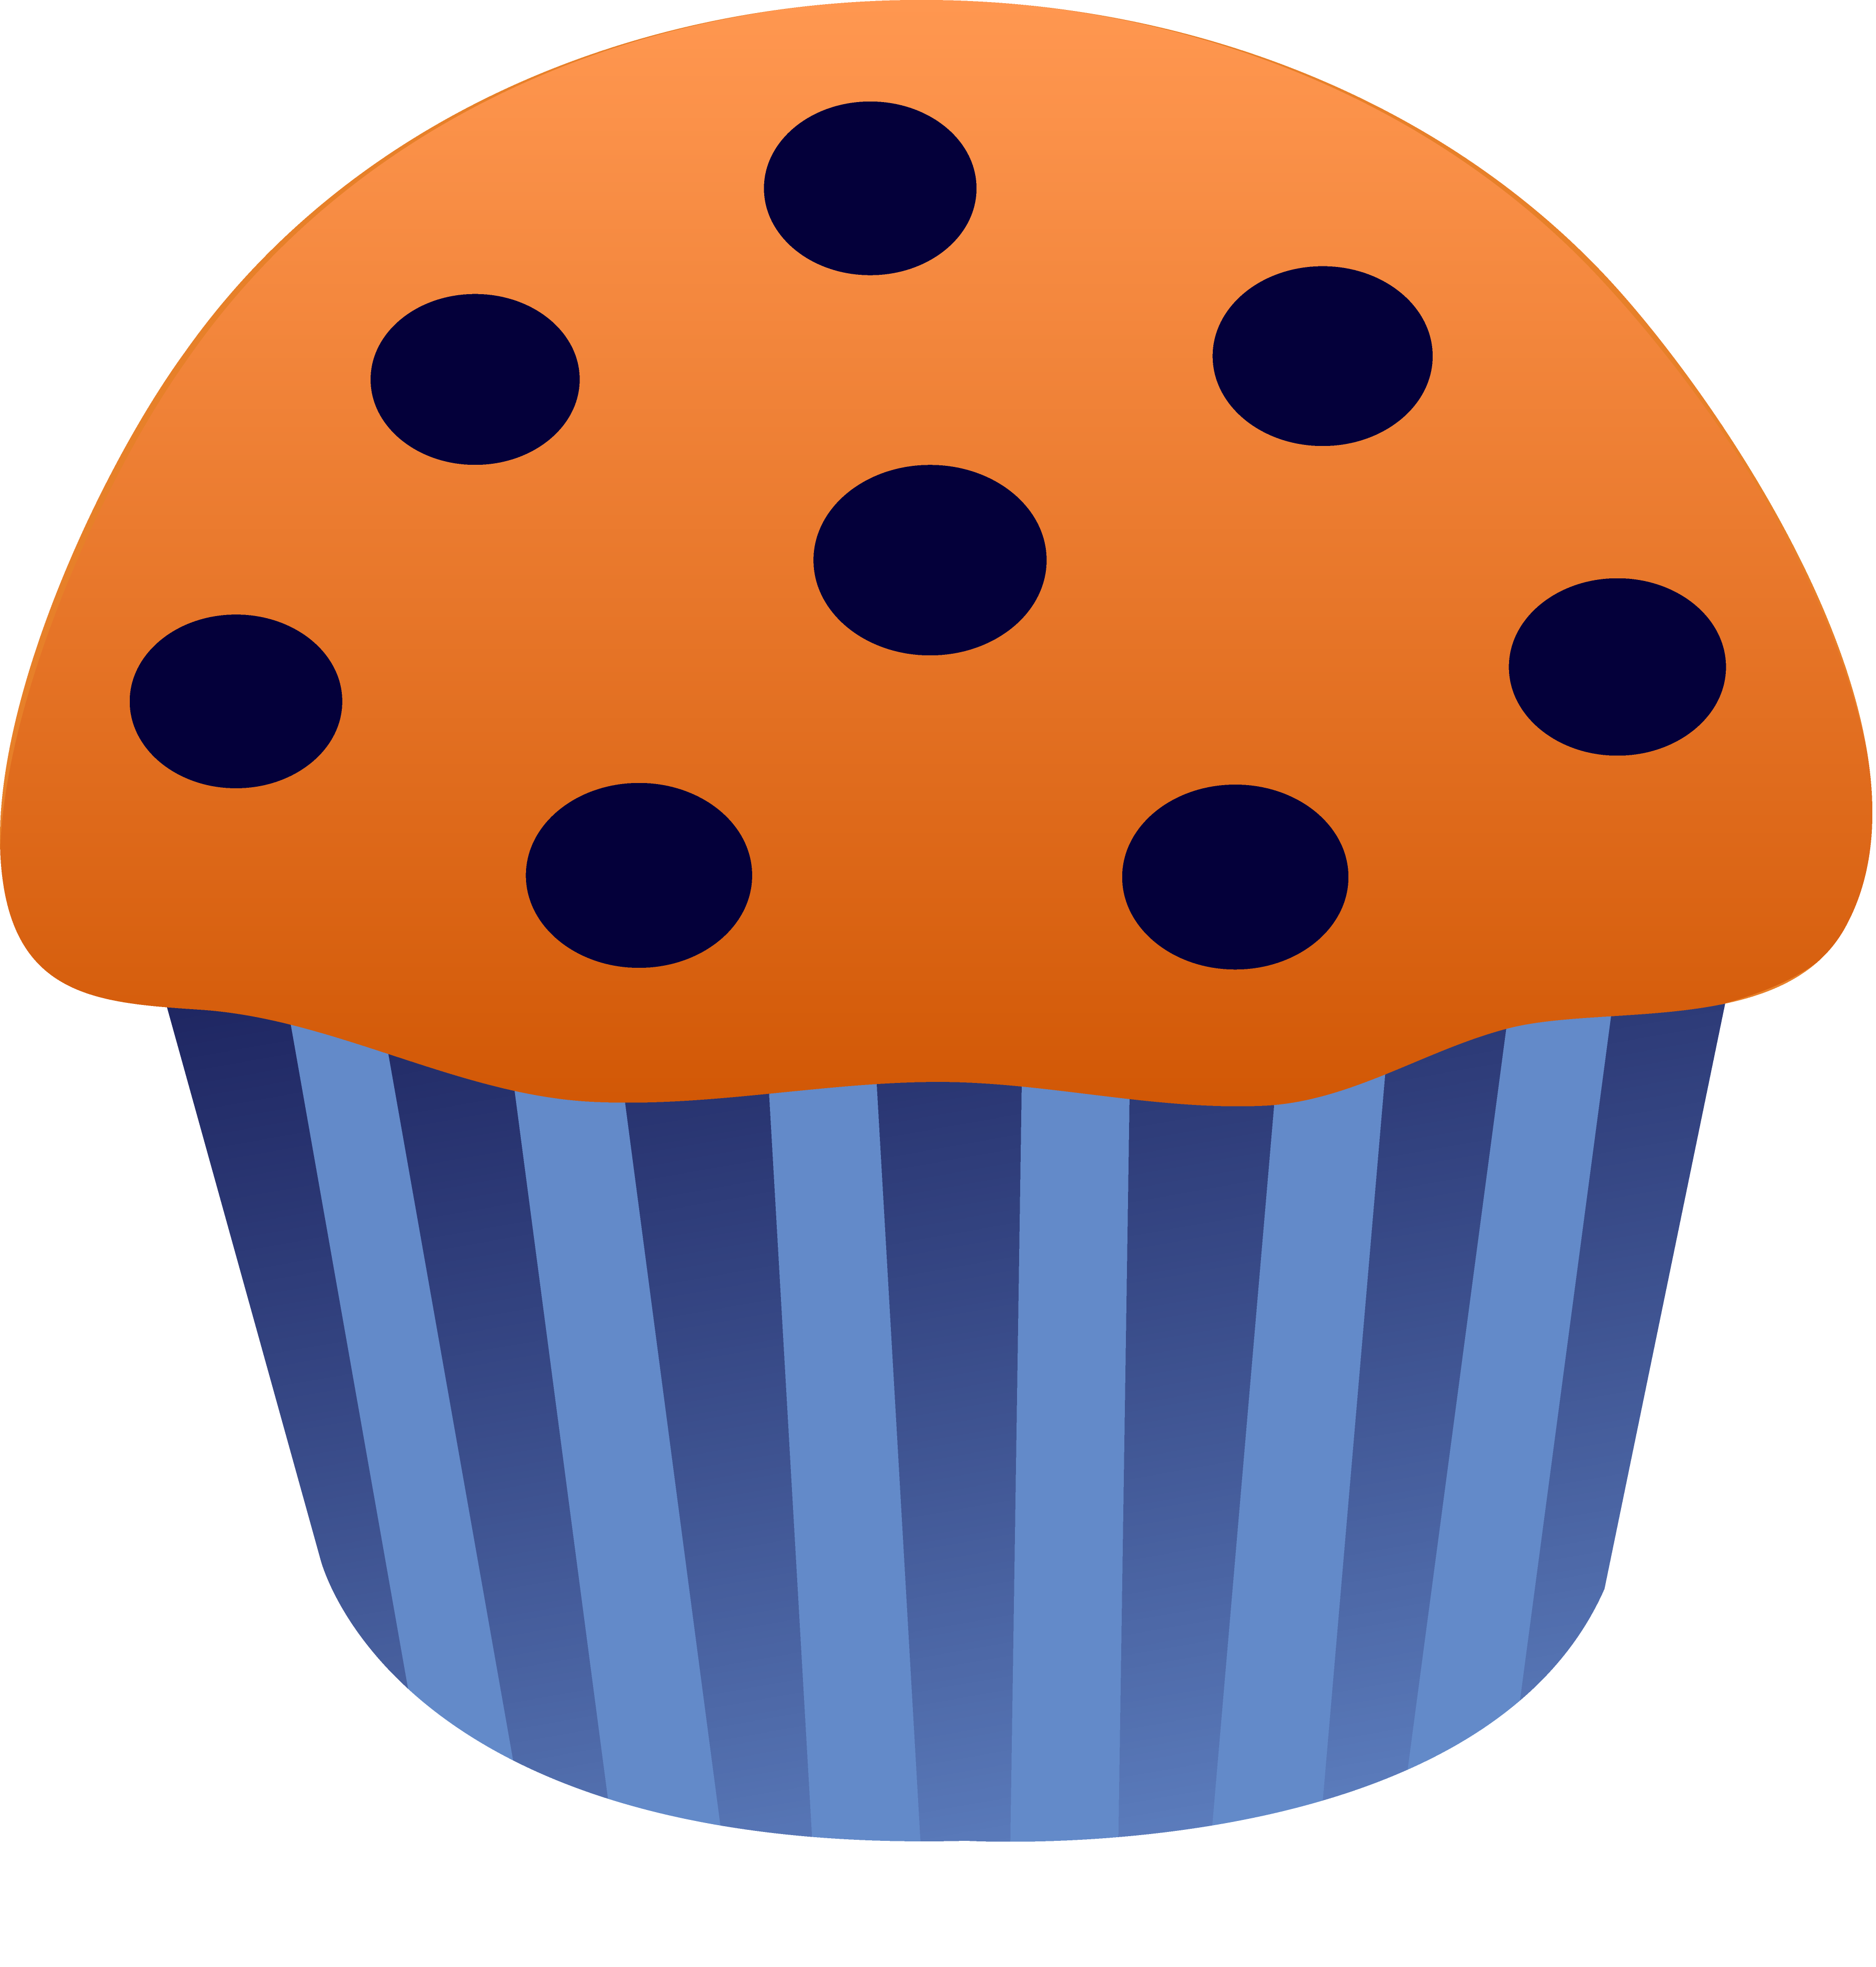 Blue muffin clipart clip freeuse stock Blueberry Muffin Vector - Free Clip Art clip freeuse stock